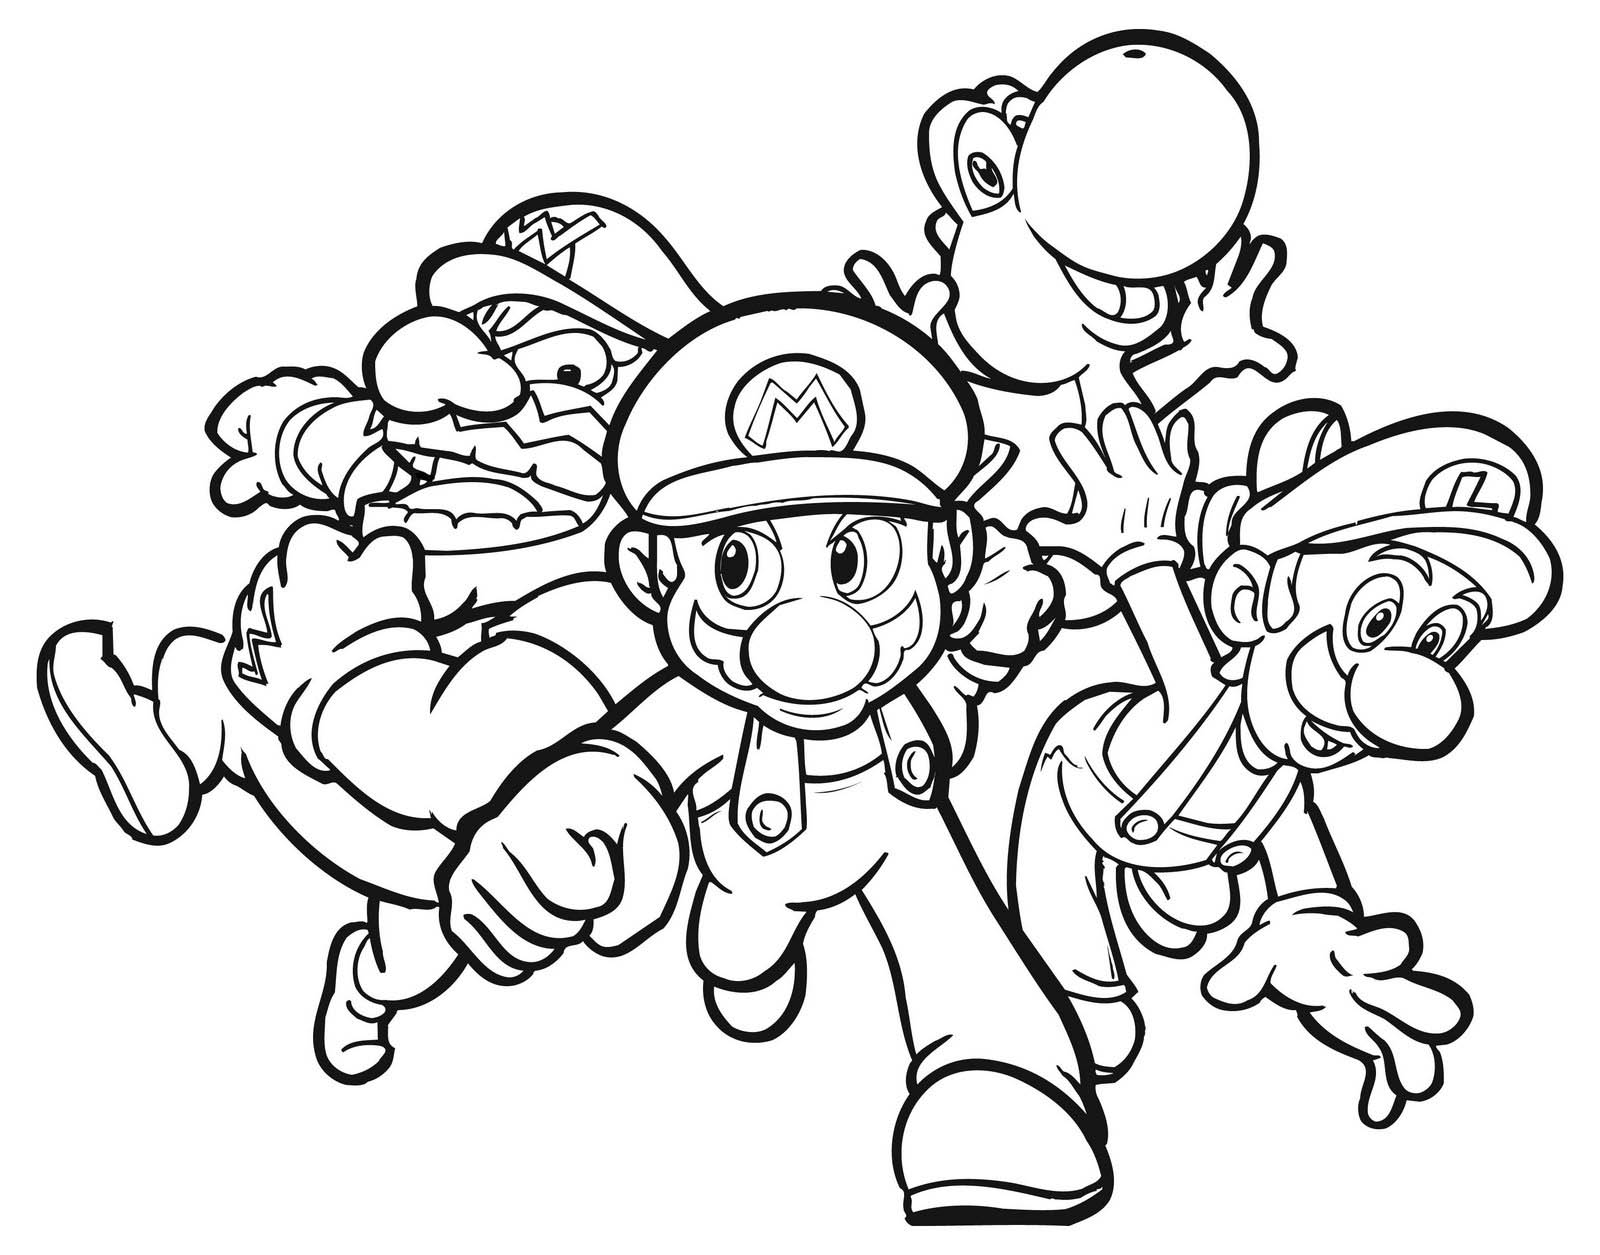 Clip Art Mario Bros Printable Coloring Pages free printable mario coloring pages for kids bros pages